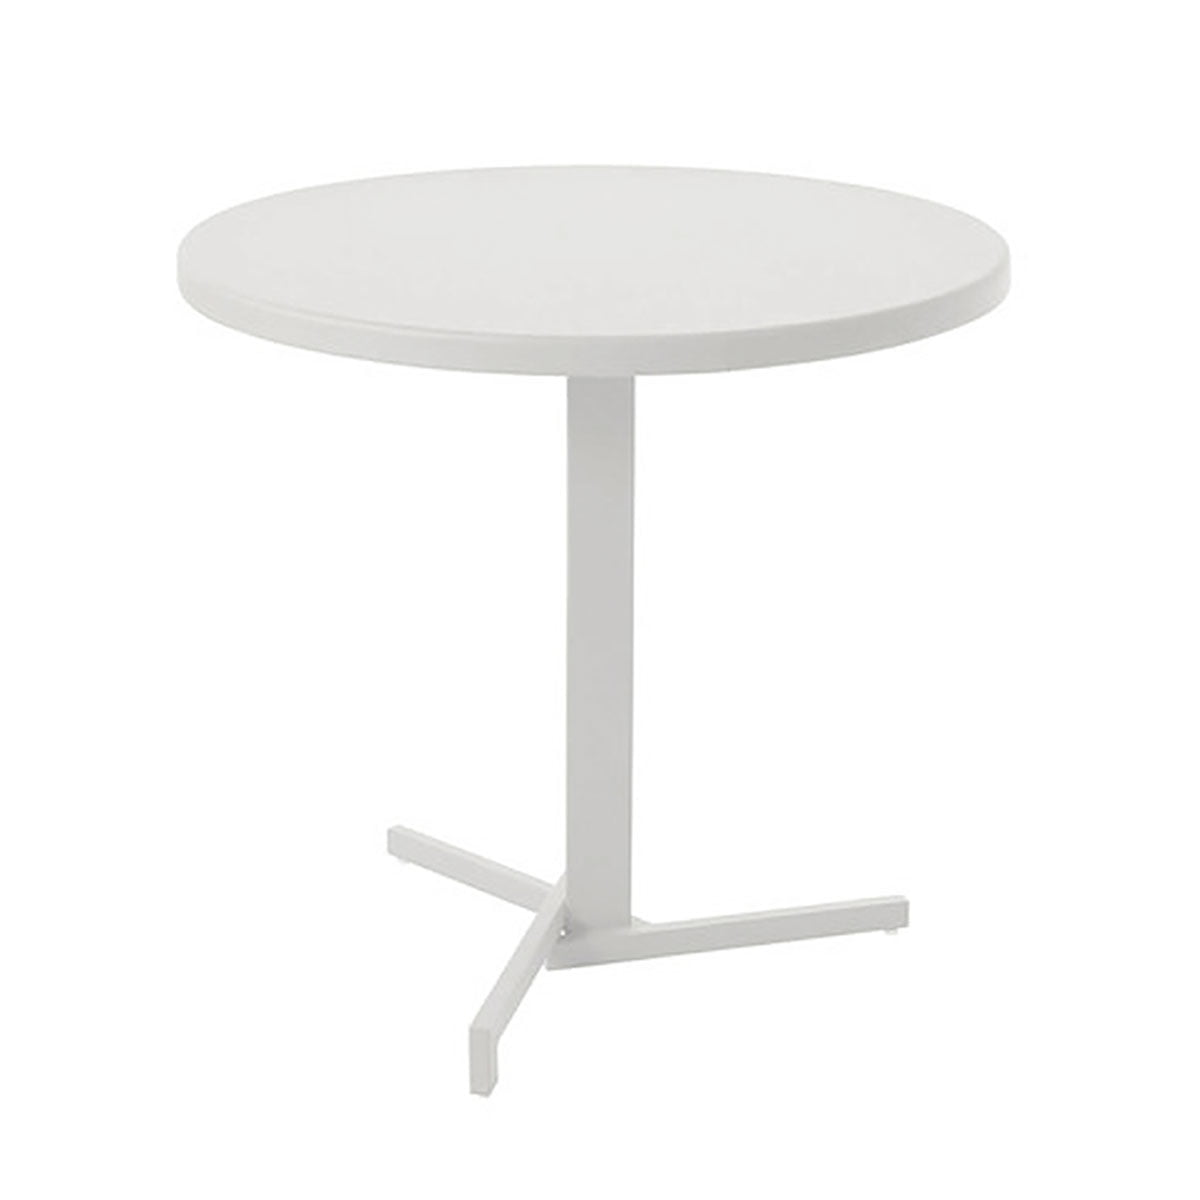 r folding alu table aluminium bistro bolero square buy